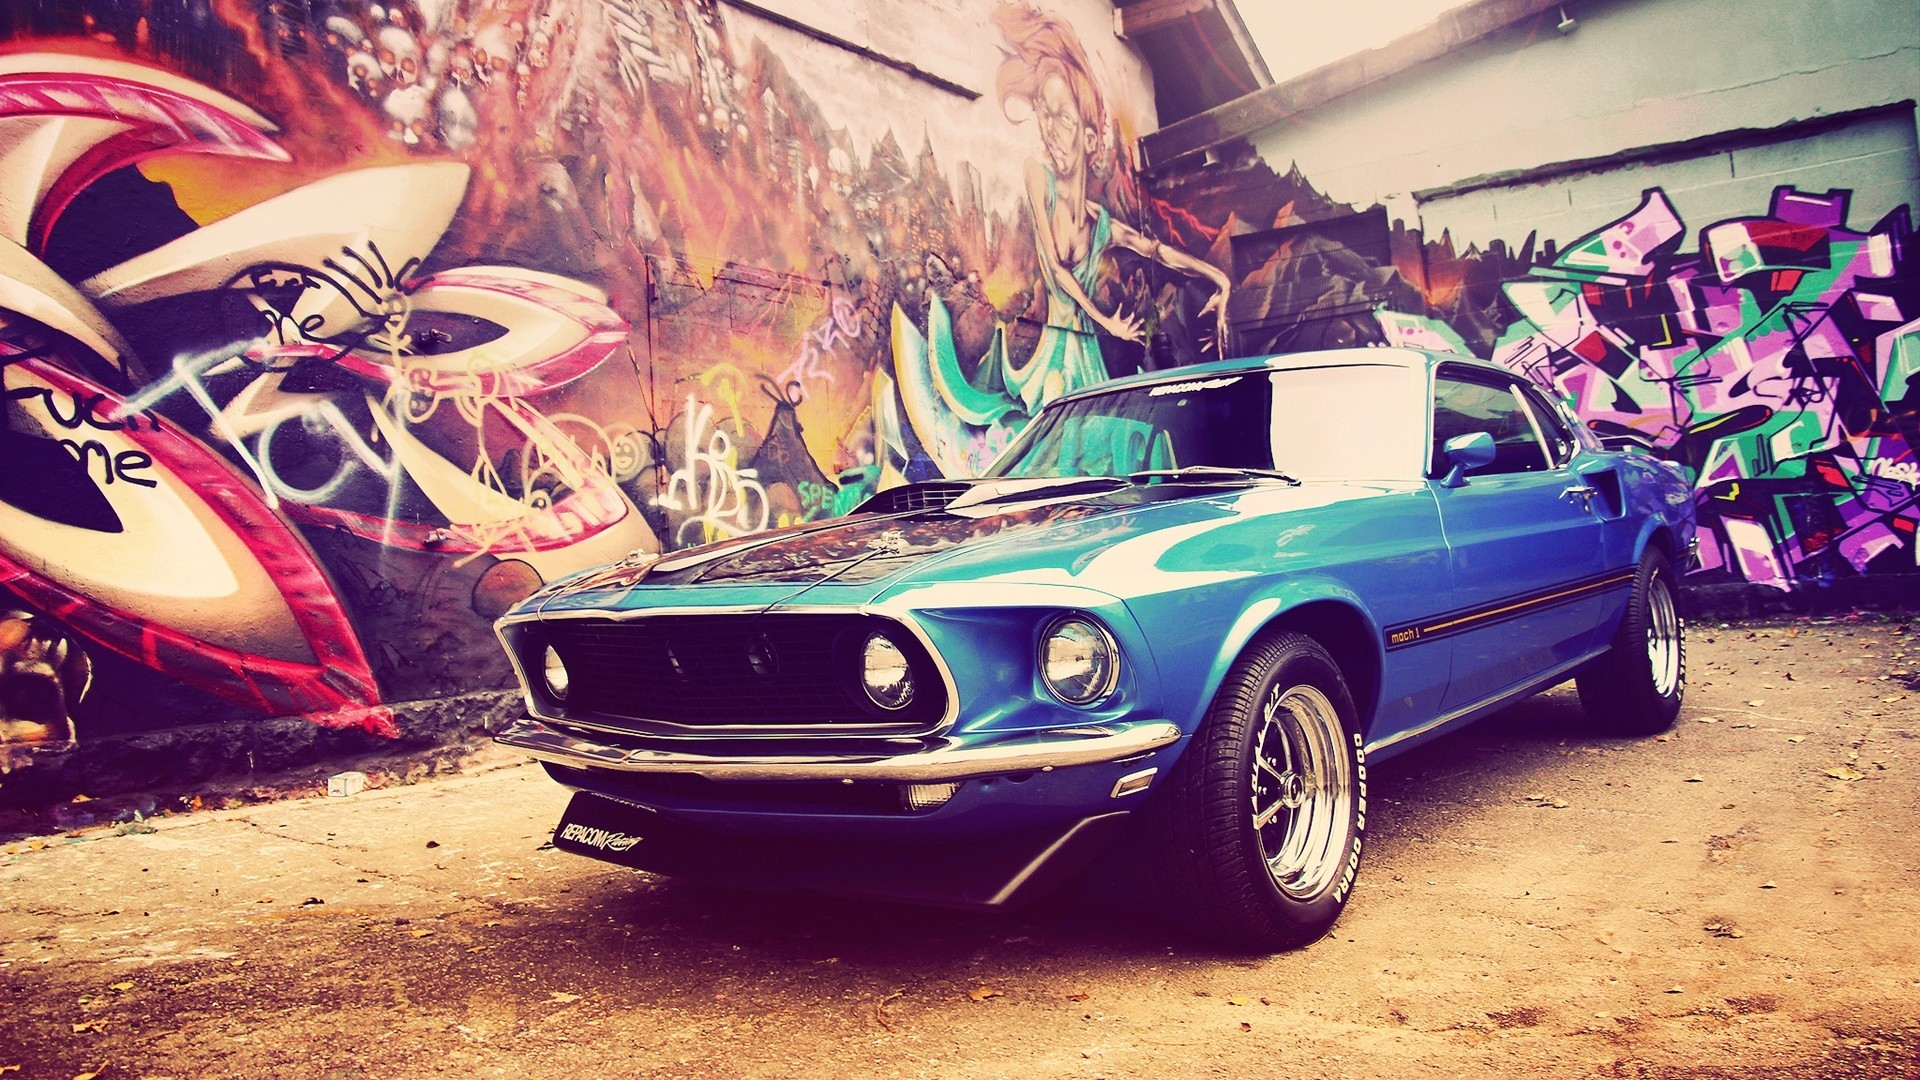 ford mustang mach 1 wallpaper background